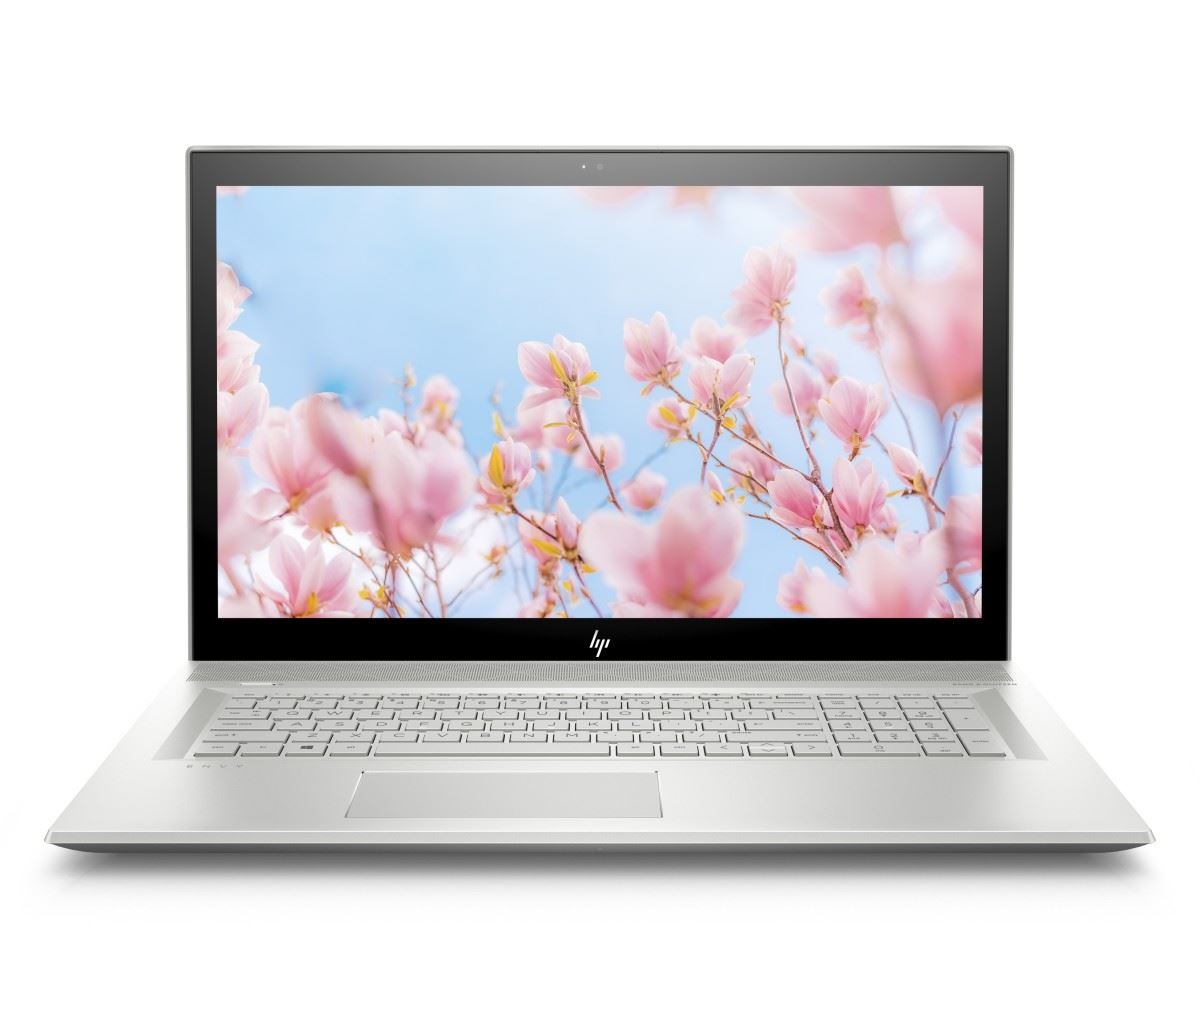 "NTB HP ENVY 17-bw0008nc; 17.3"" IPS AG FHD;i7-8550U 16GB DDR4;1TB/7200+256GB SSD;DVD;GeF MX150-4GB;USB3,1C;Win10 - silver"